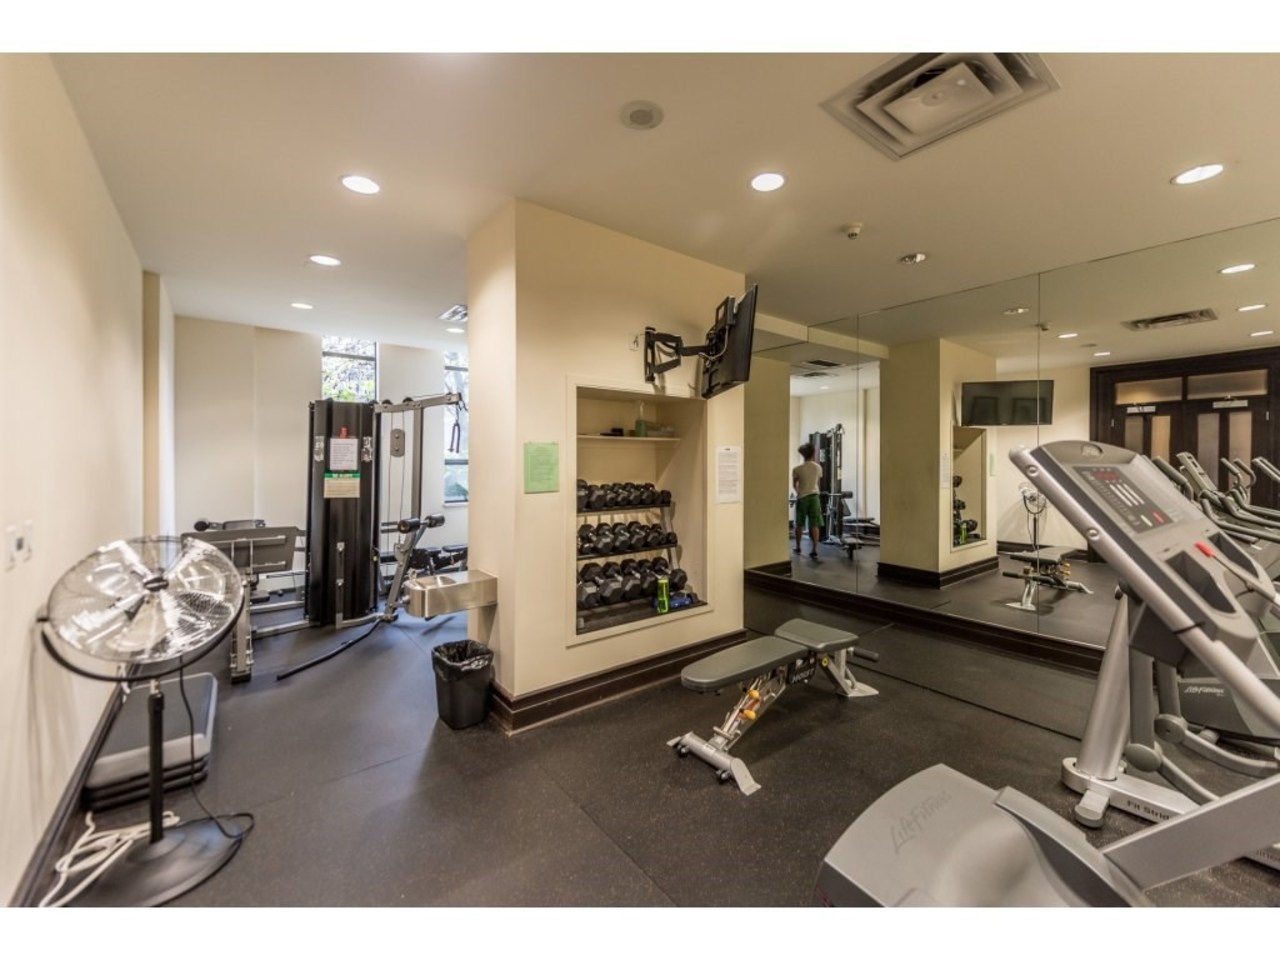 172 bed 2 bath Condo in Lonsdale by Solon Bucholtz  at 112 - 170 W 1st Street, Lower Lonsdale, North Vancouver